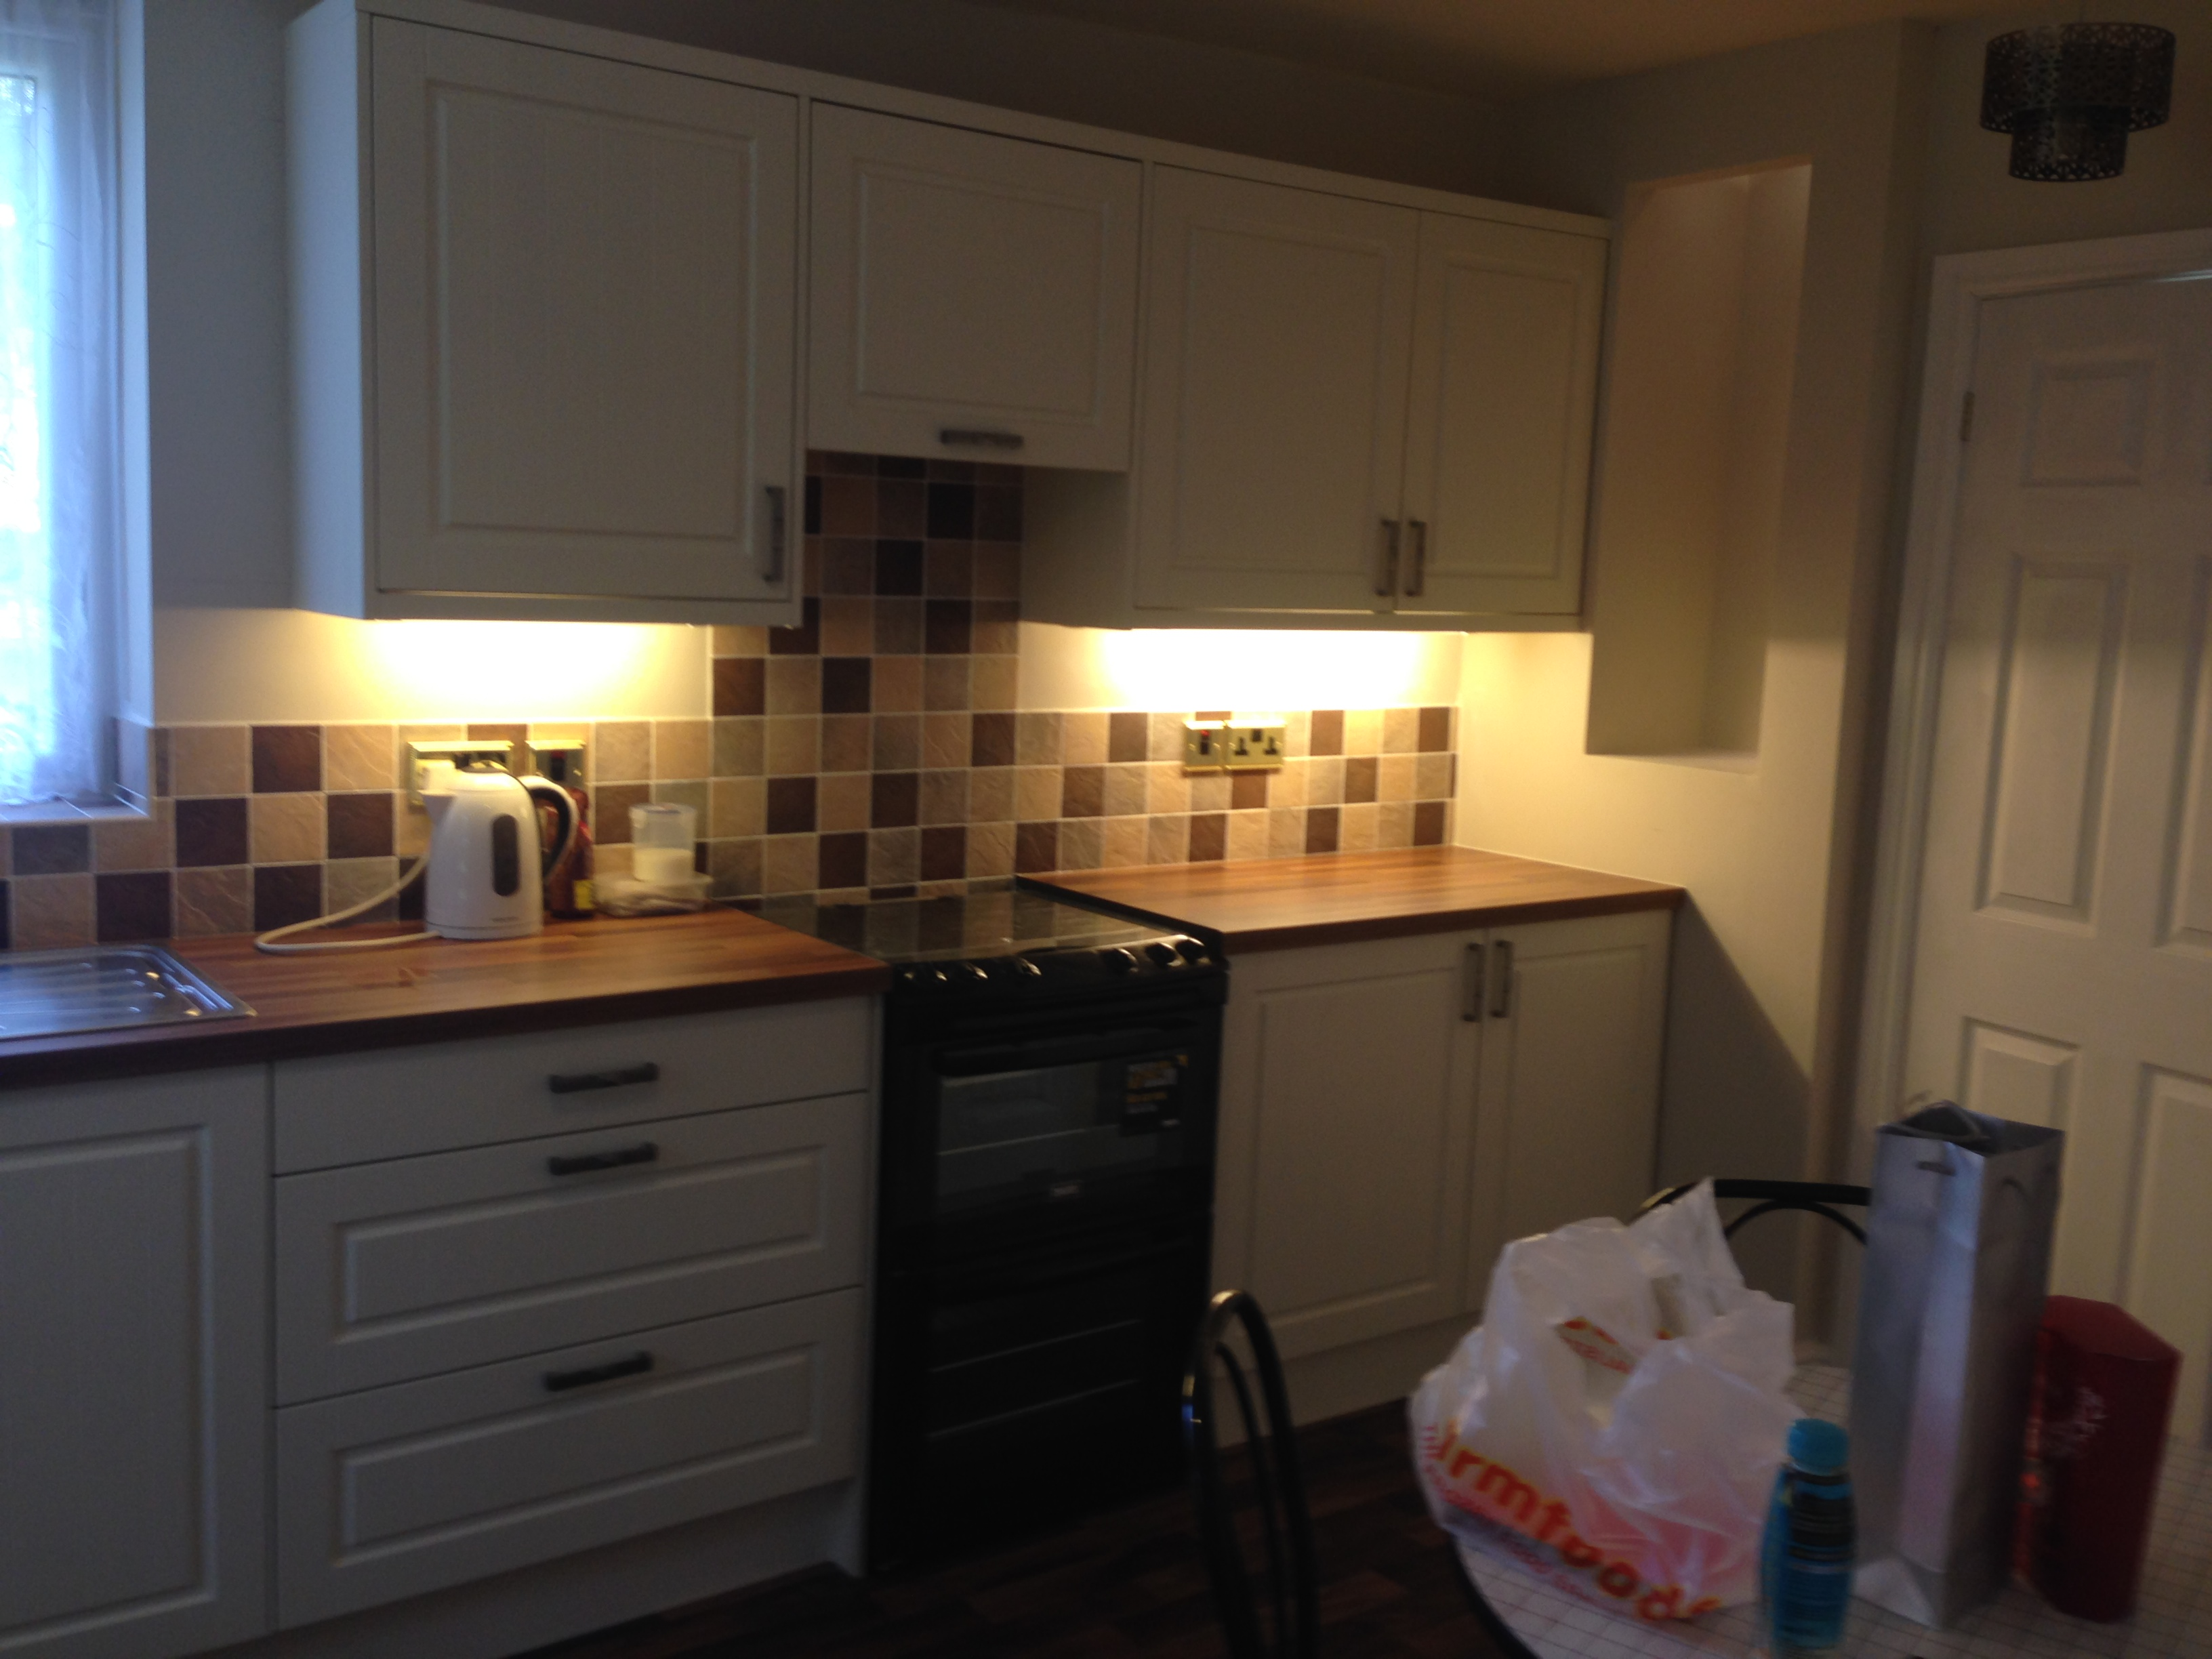 Coventry kitchens and bathrooms - New Kitchen Bathroom Tile Hill Coventry Affordable Home Improvements Customer Review